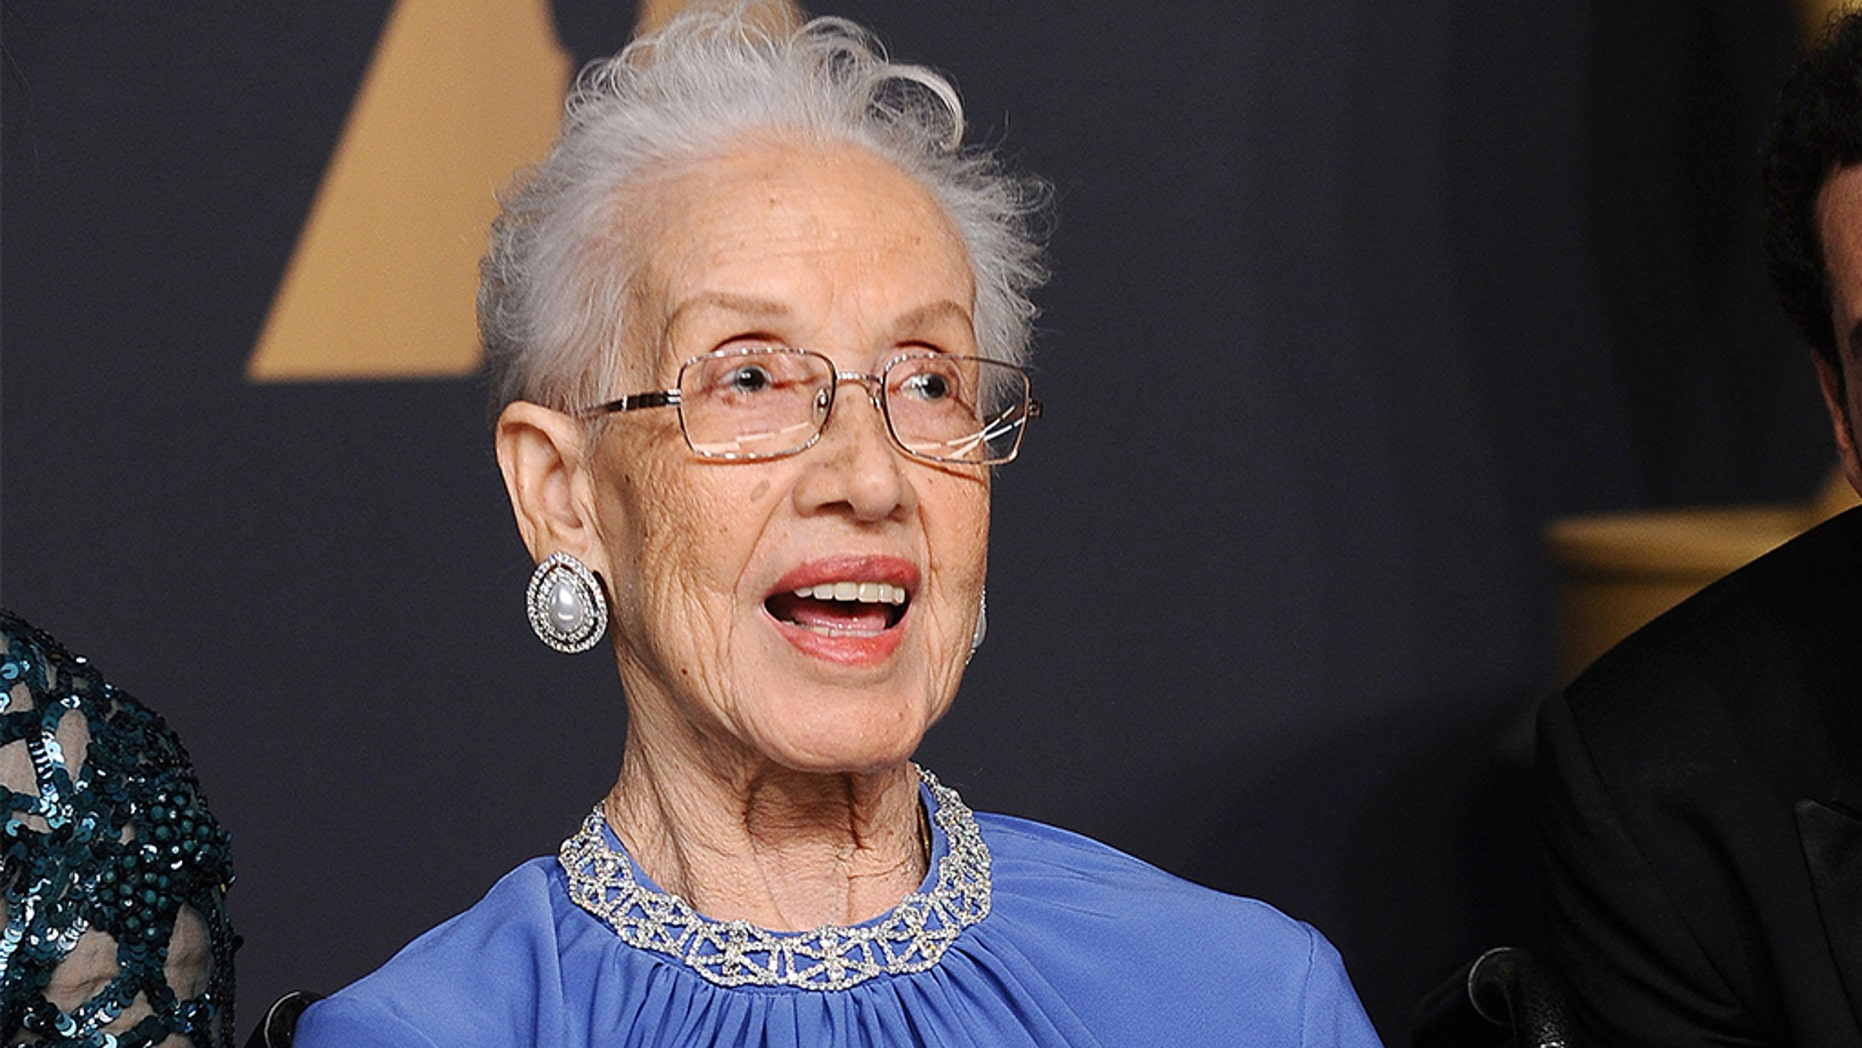 NASA renamed itsIndependent Verification and ValidationFacility in West Virginia in honor of Katherine Johnson.